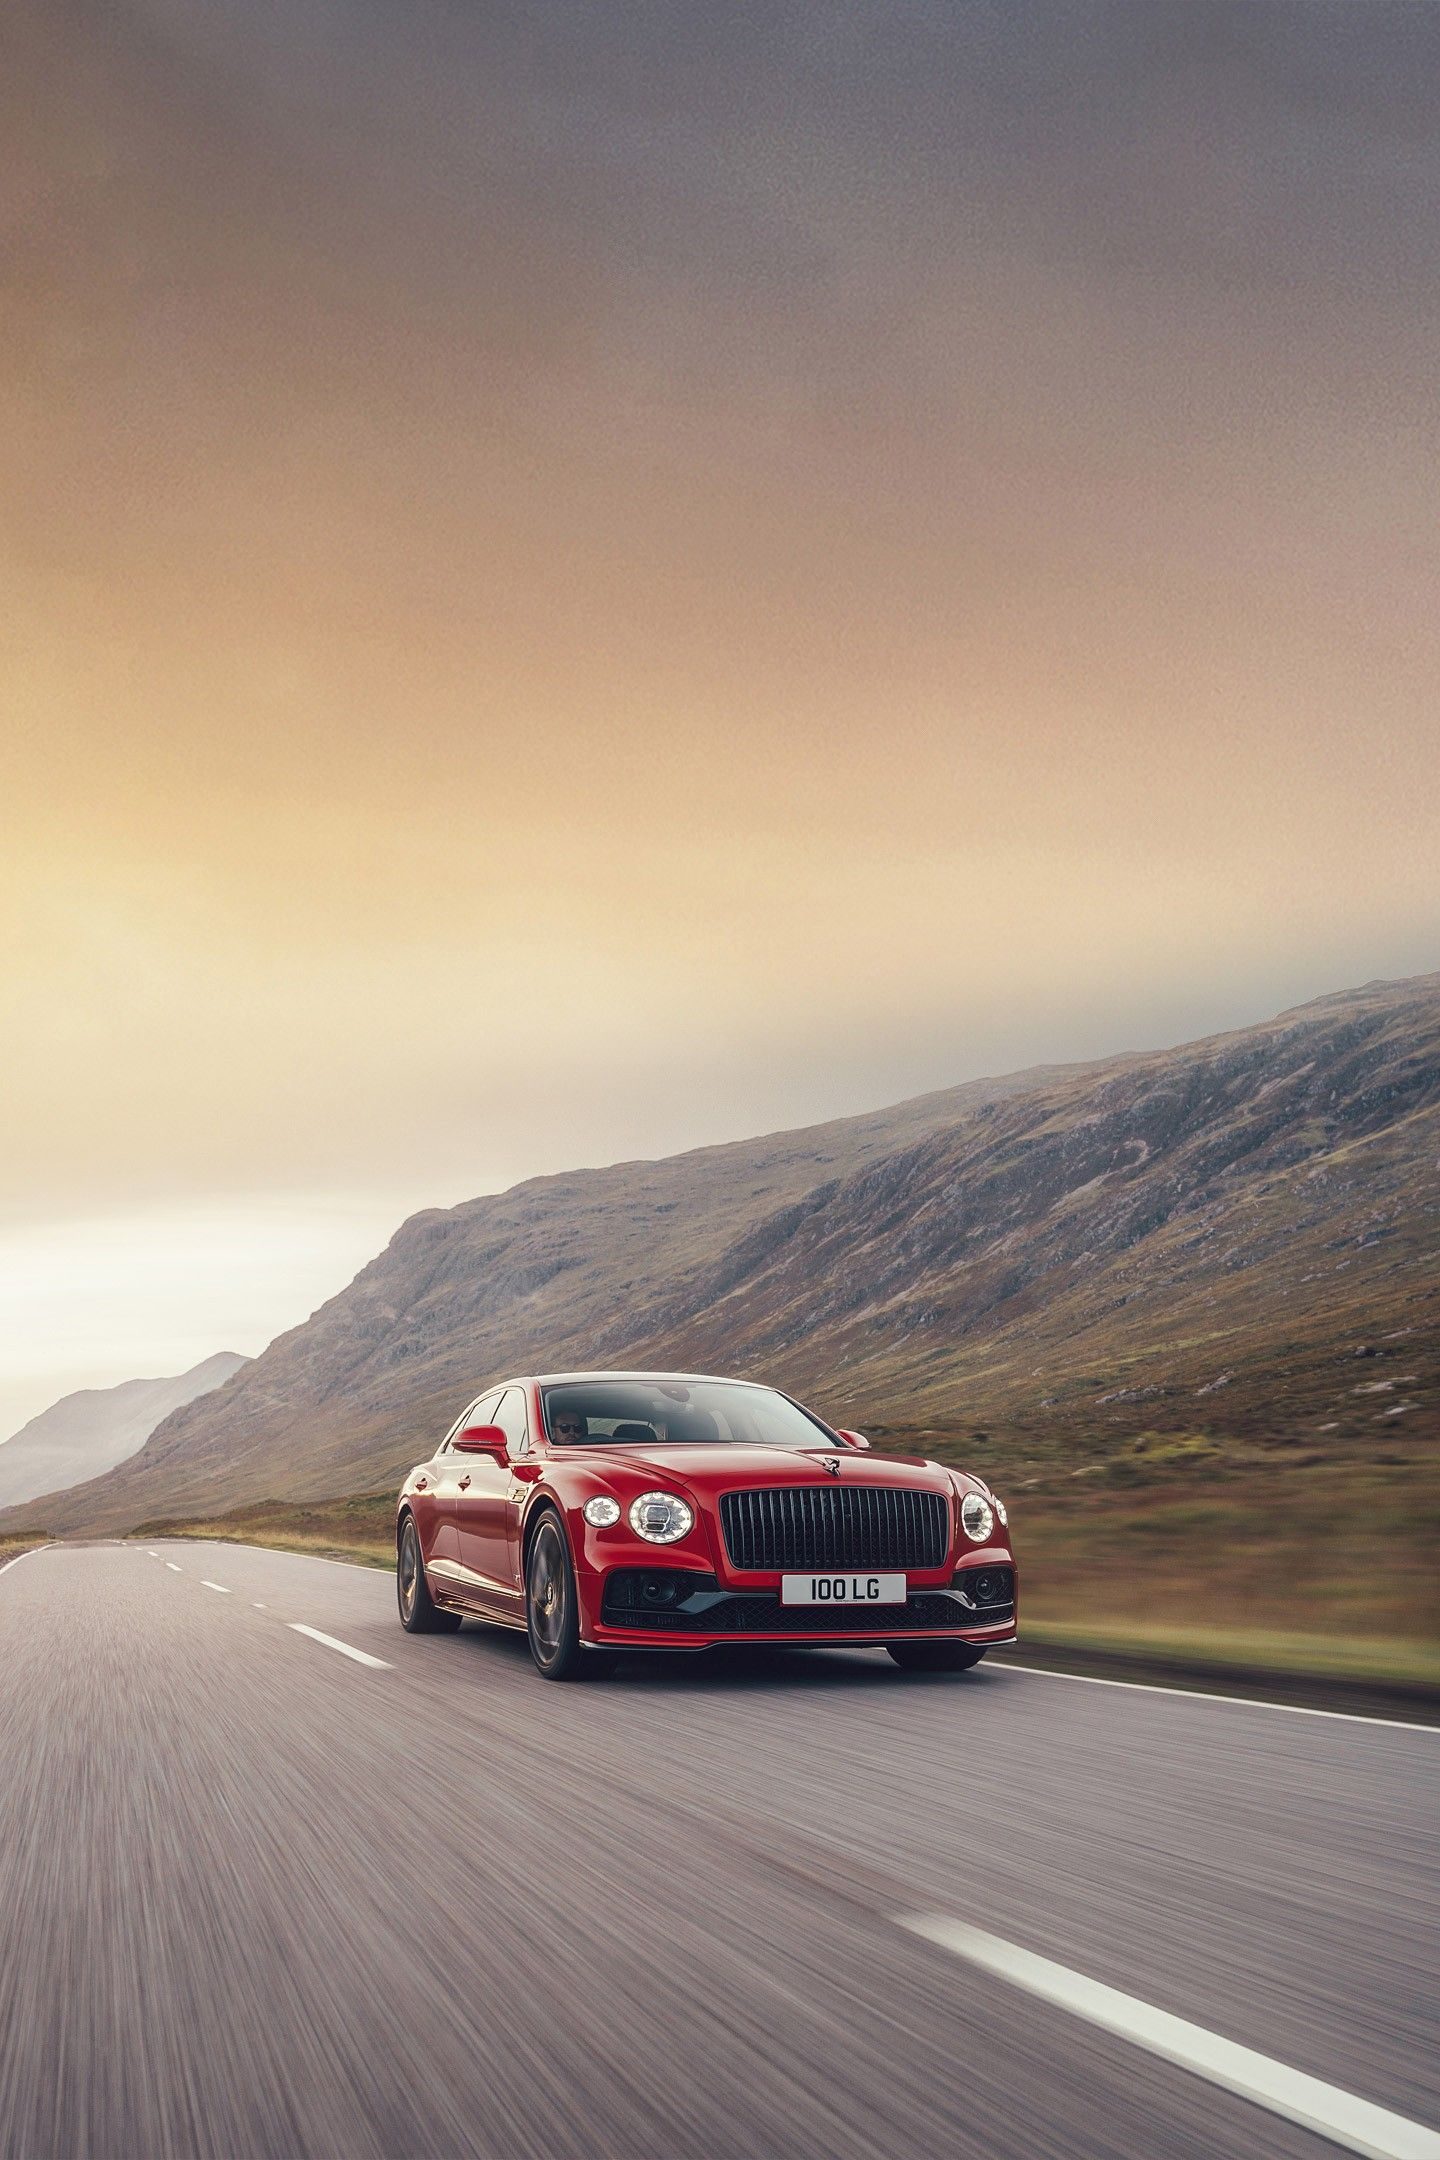 Cars Mobile Full Hd Wallpapers 1440x2160 In 2021 Bentley Flying Spur 4k Wallpaper Download Full Hd Wallpaper Download full hd wallpaper for mobile